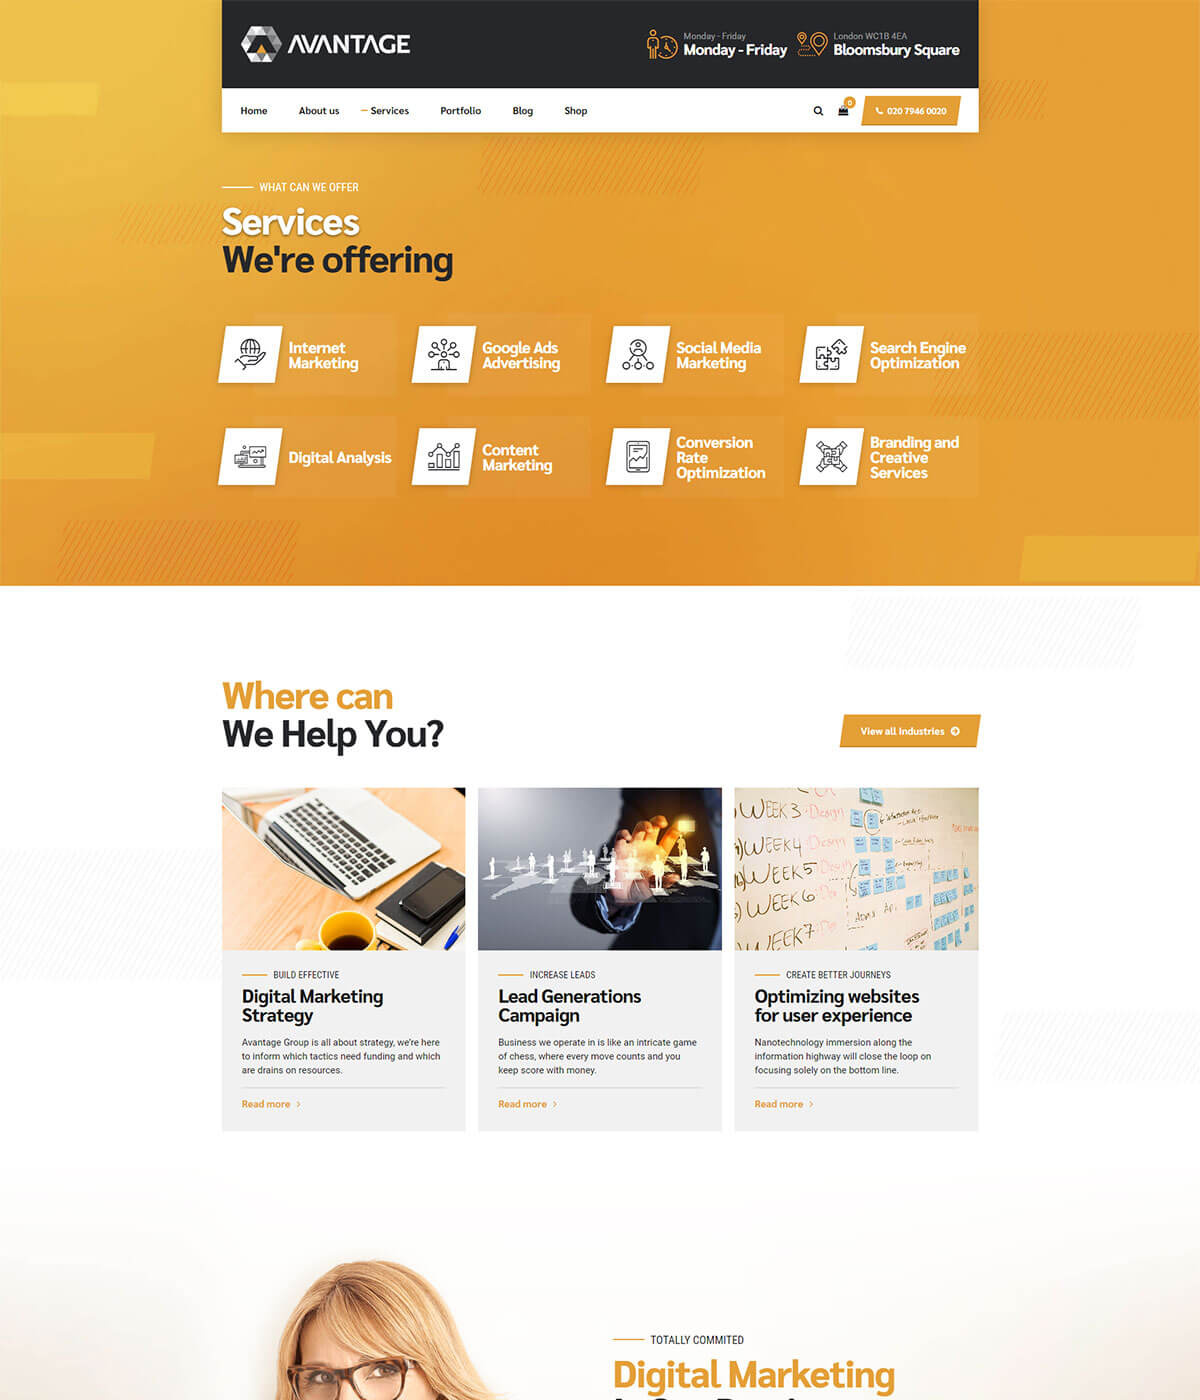 http://avantage.bold-themes.com/wp-content/uploads/2019/05/marketing-06-services.jpg